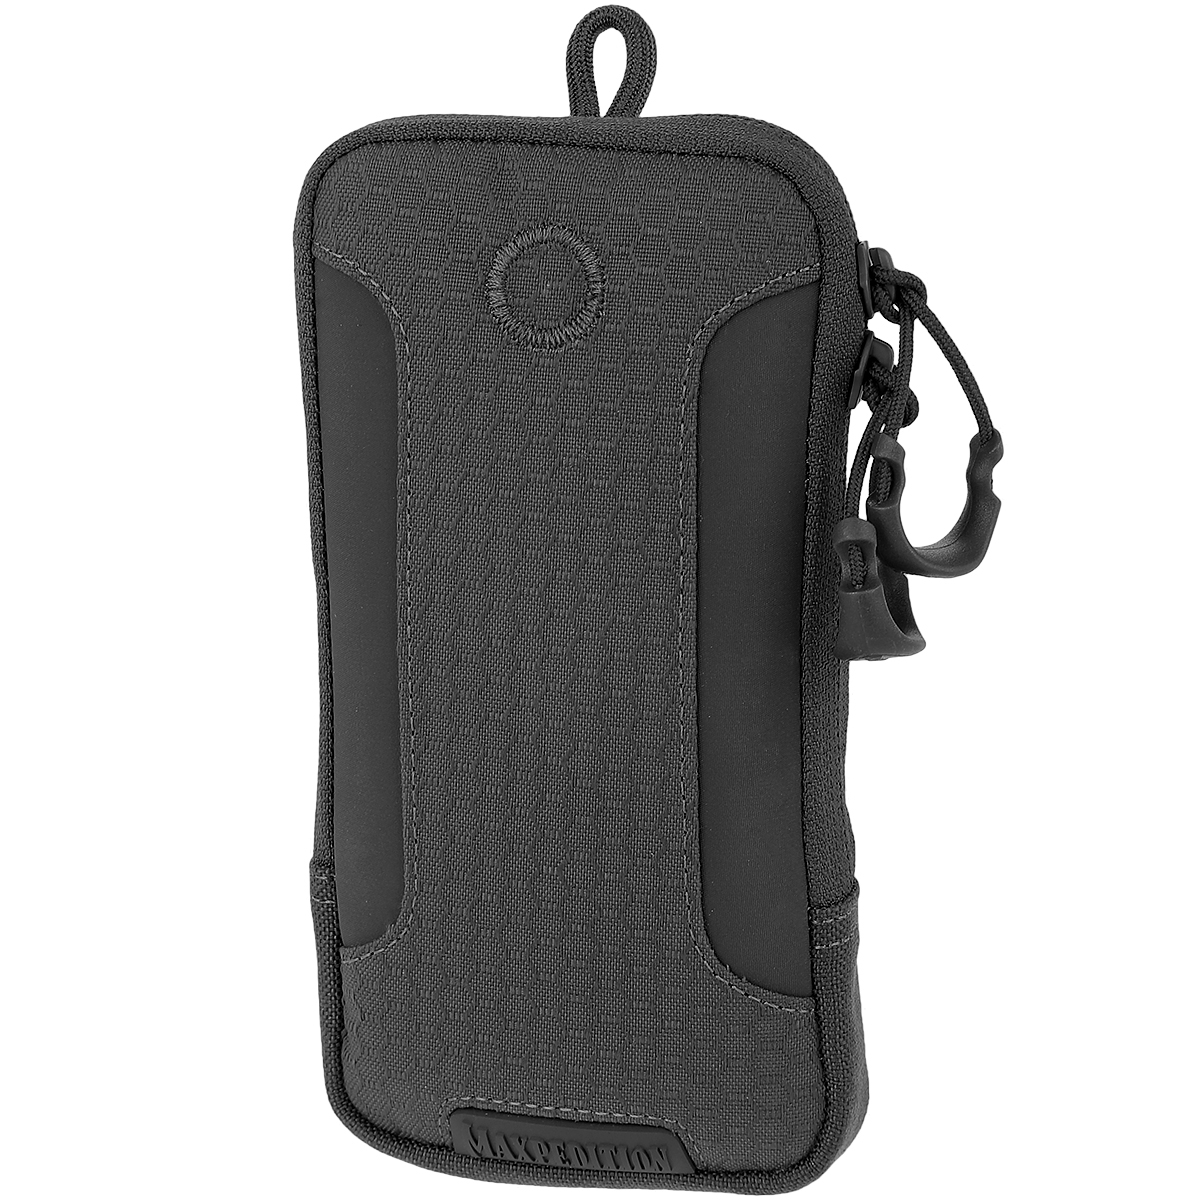 huge discount c2feb 5a511 Details about Maxpedition PLP iPhone 6/6S/7 Plus Pouch MOLLE Military Case  Padded Holder Black